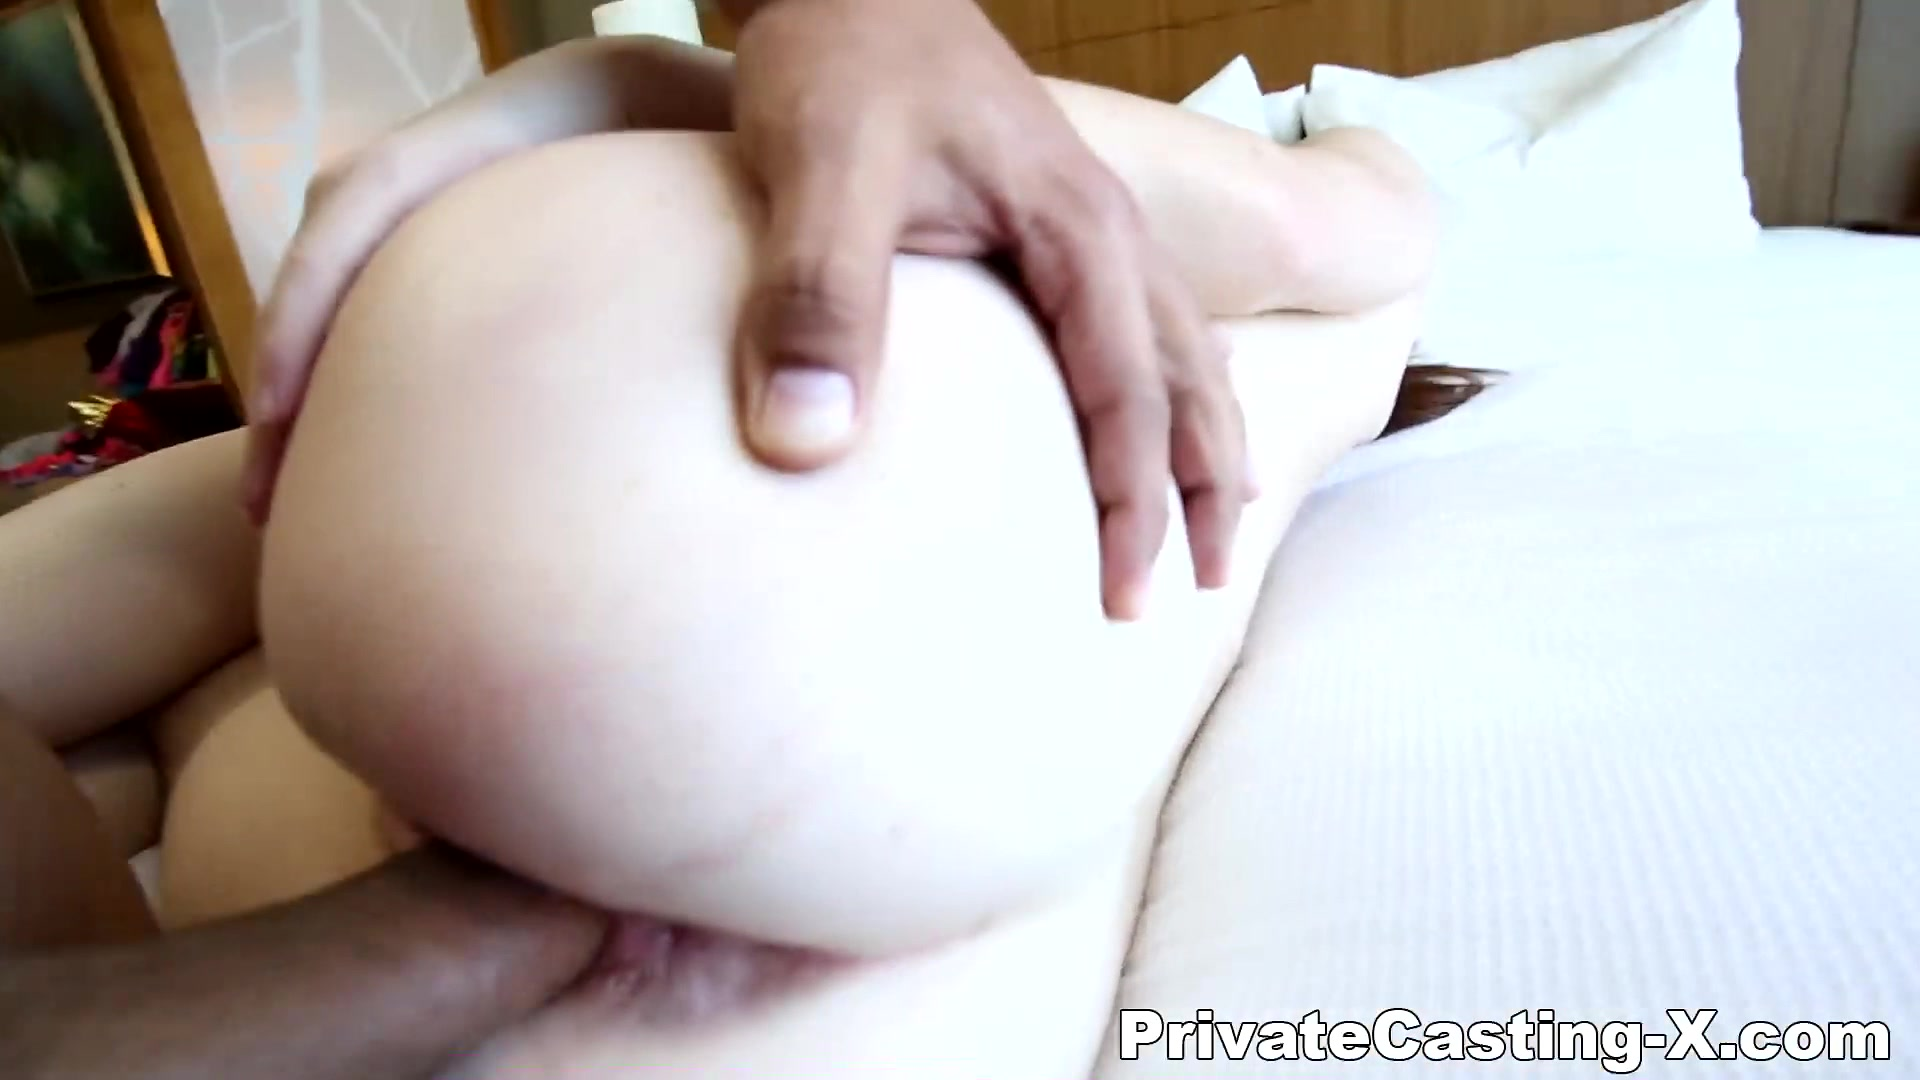 Im black and hookup a white guy meme for thinking Hot xXx Video